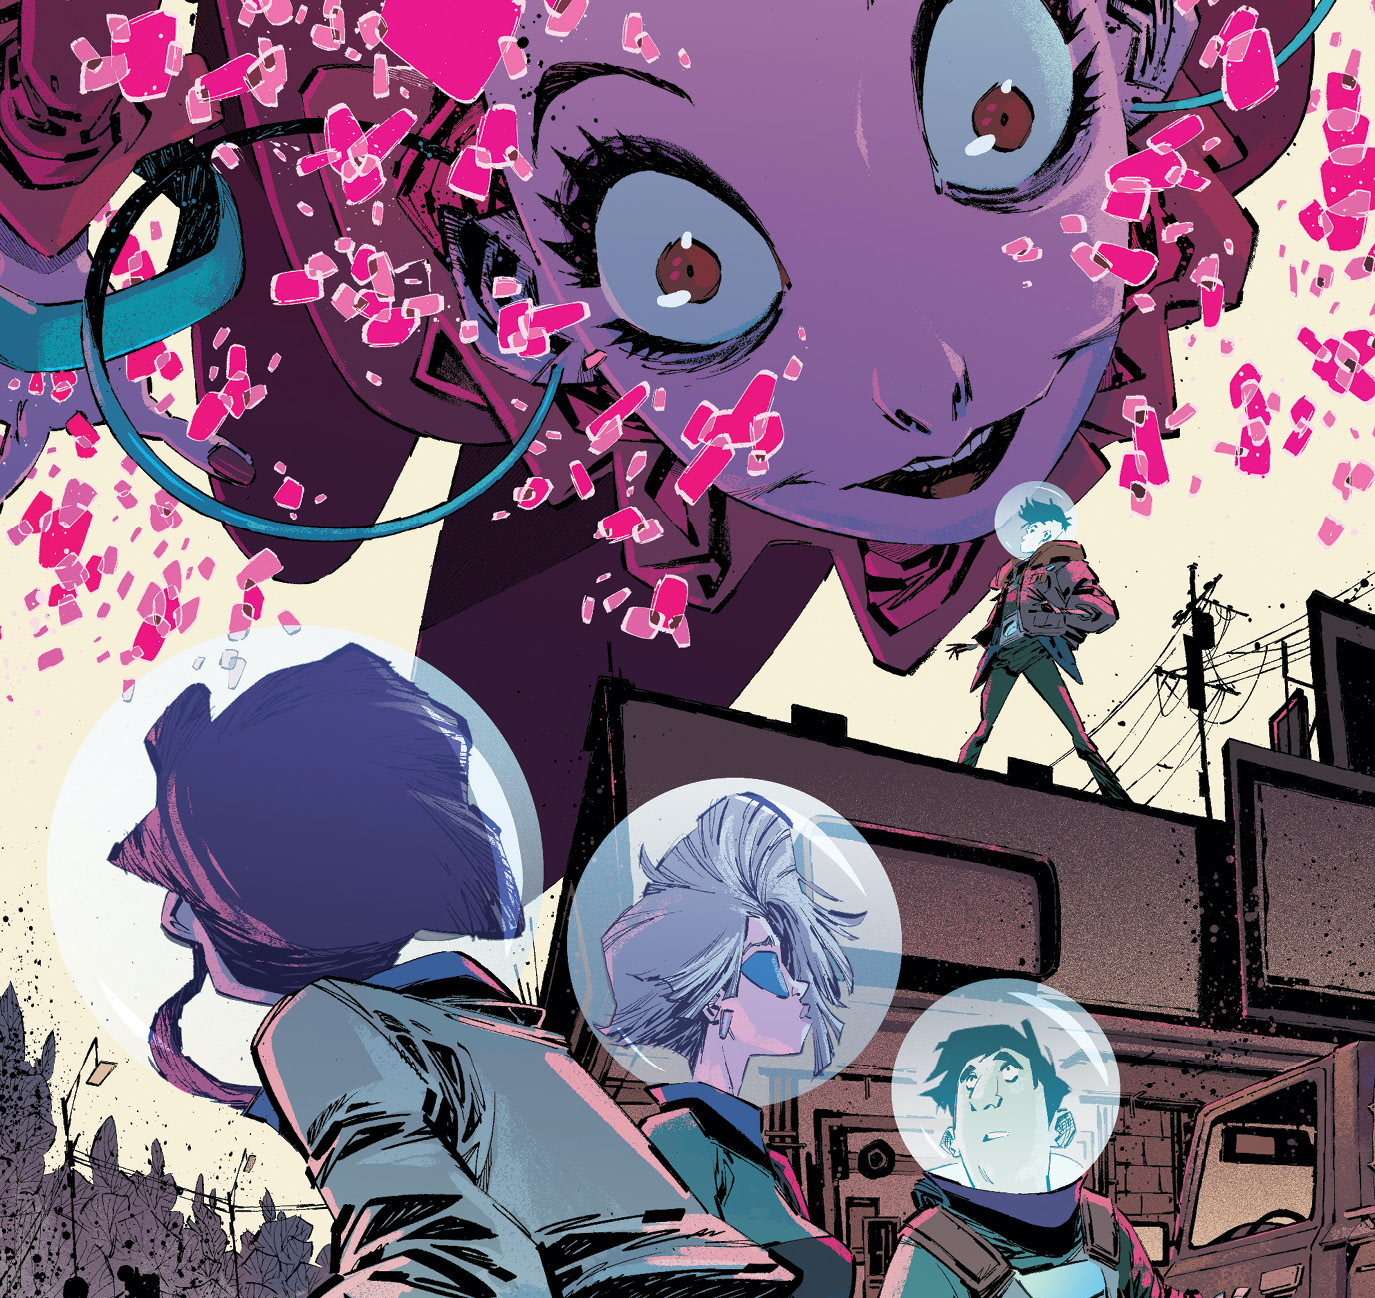 EXCLUSIVE BOOM! Preview: Good Luck #2